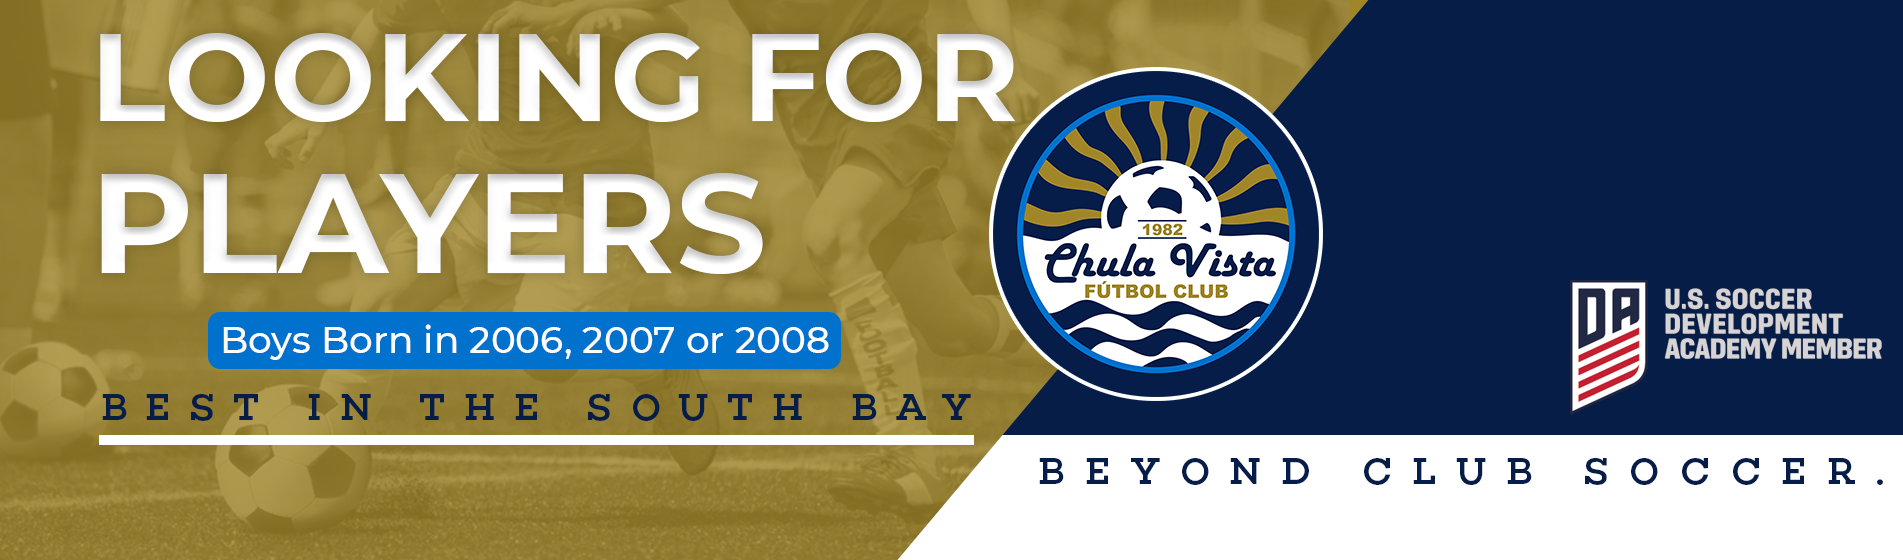 DA Tryouts - Boys Born in 2006, 2007 & 2008